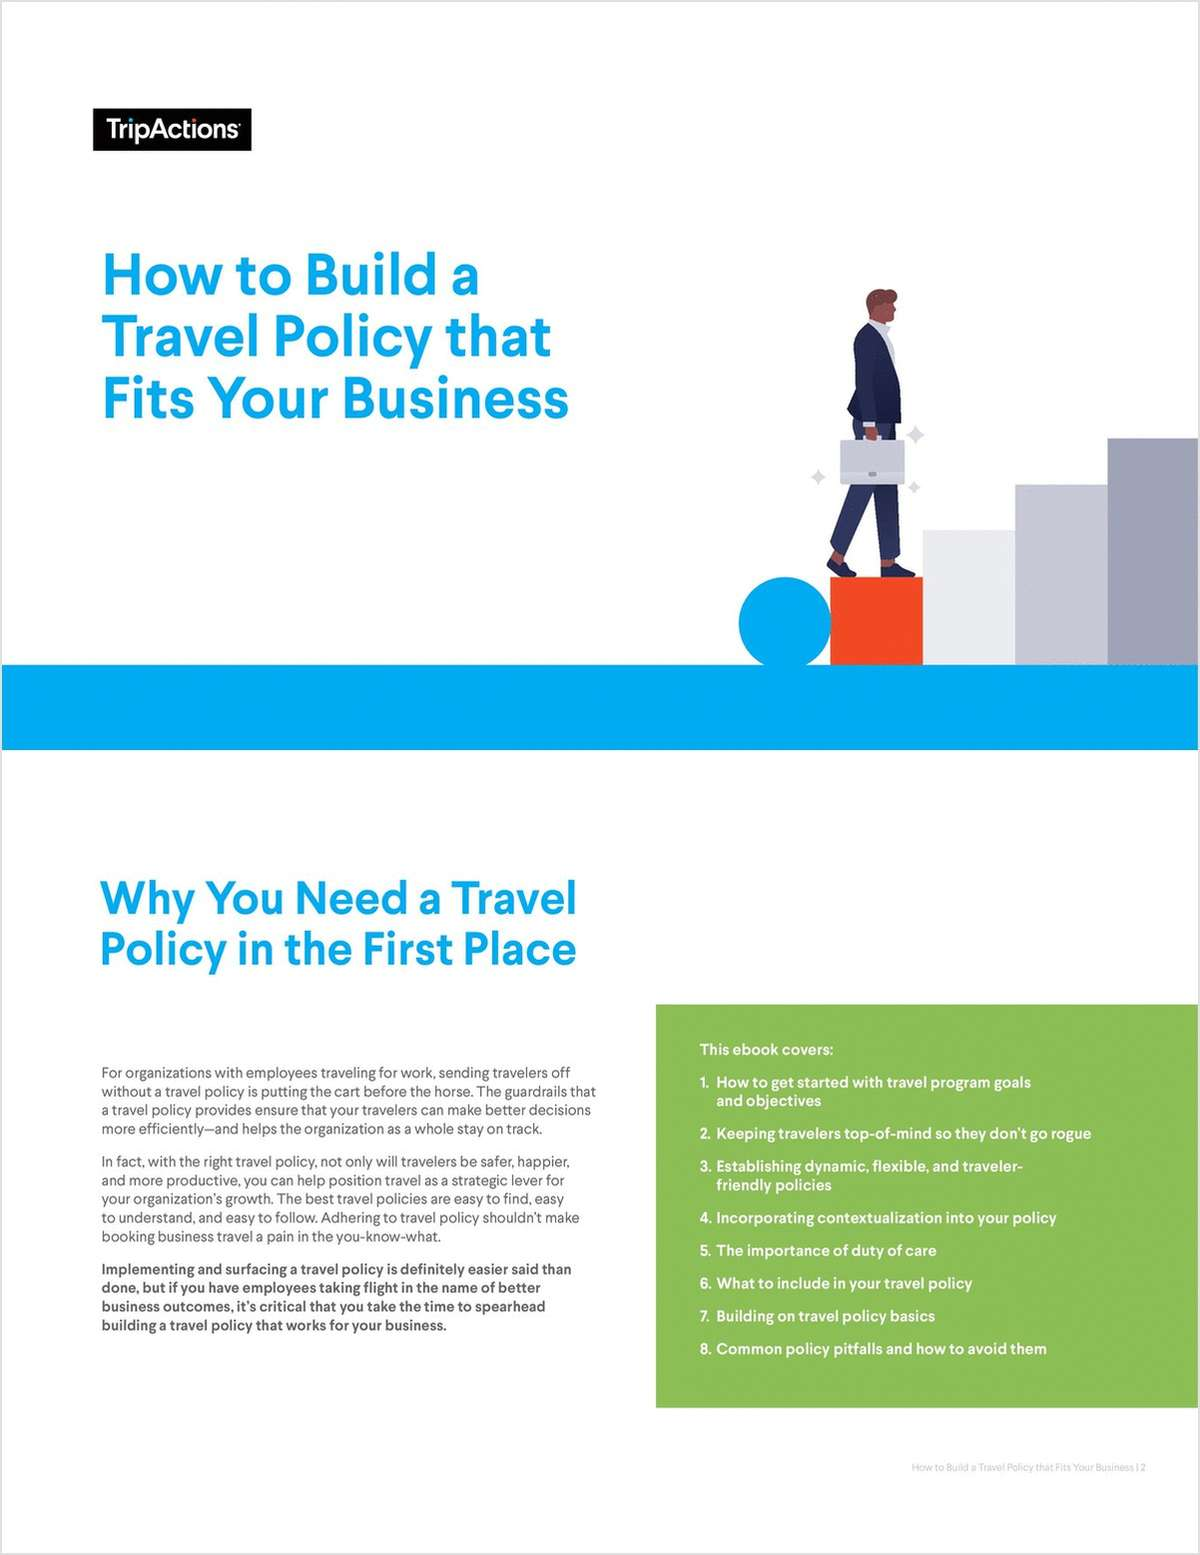 How to Build a Travel Policy that Fits Your Business